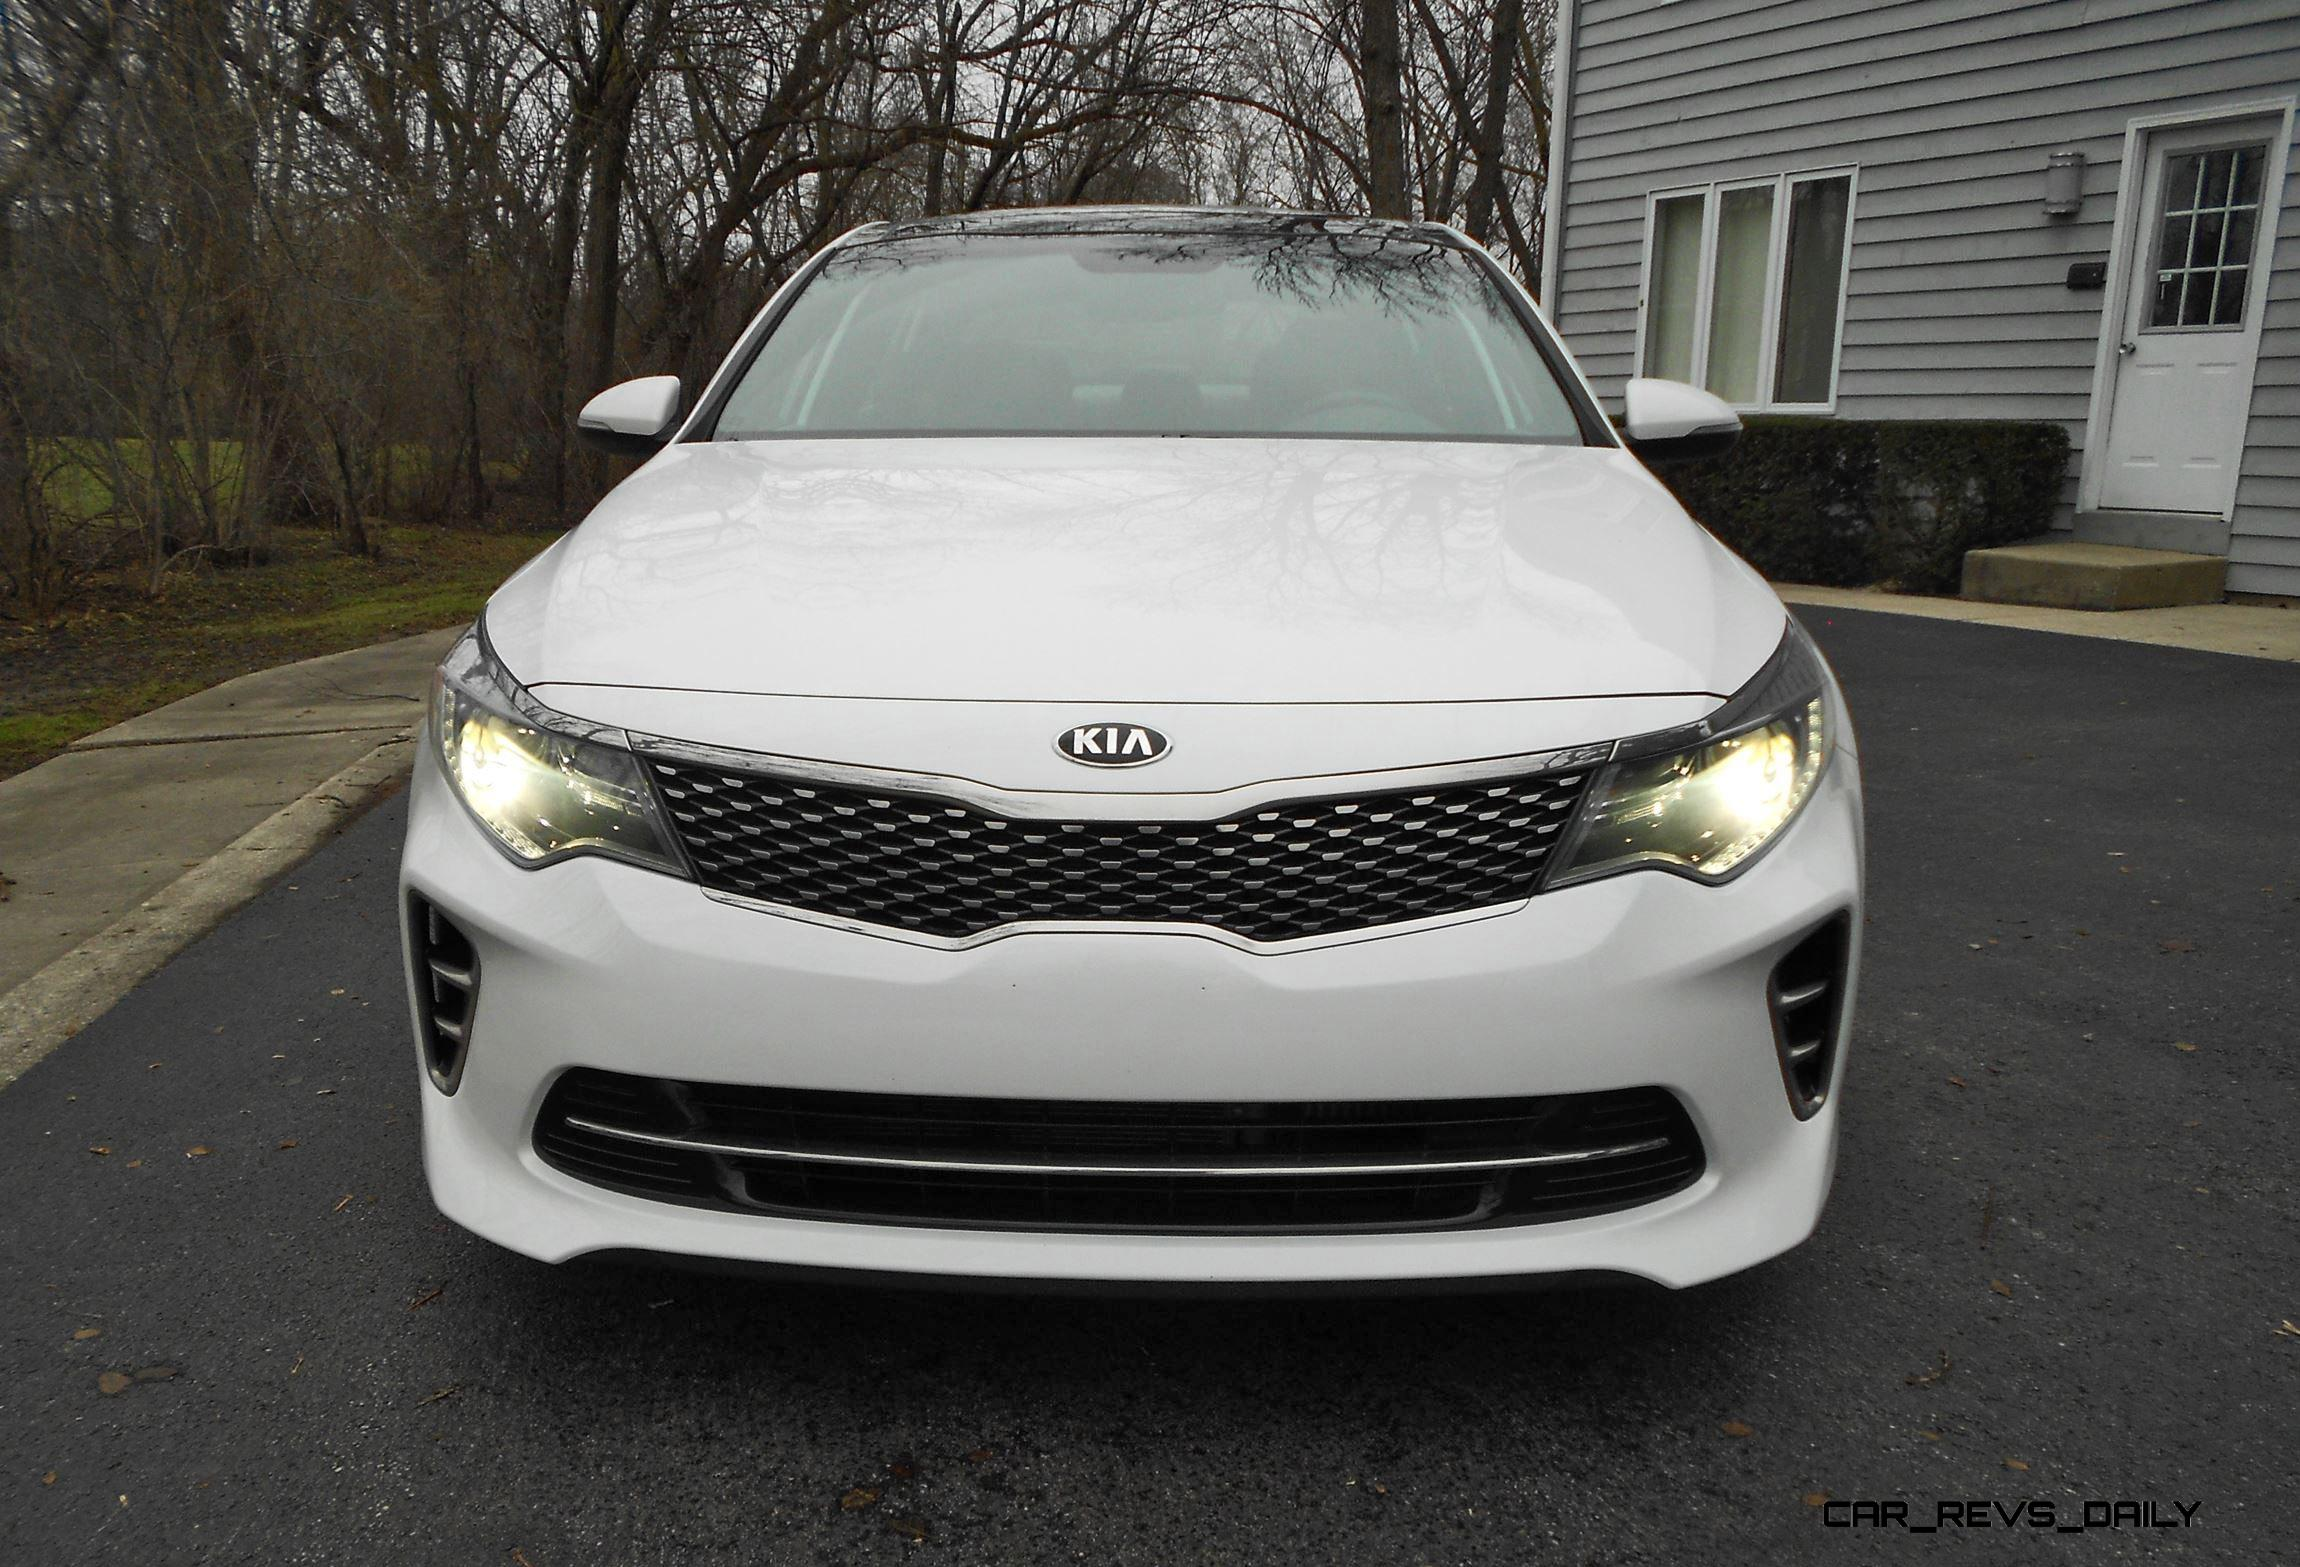 Lastest First Drive Review  2016 Kia Optima SX 20T  By Ben Lewis